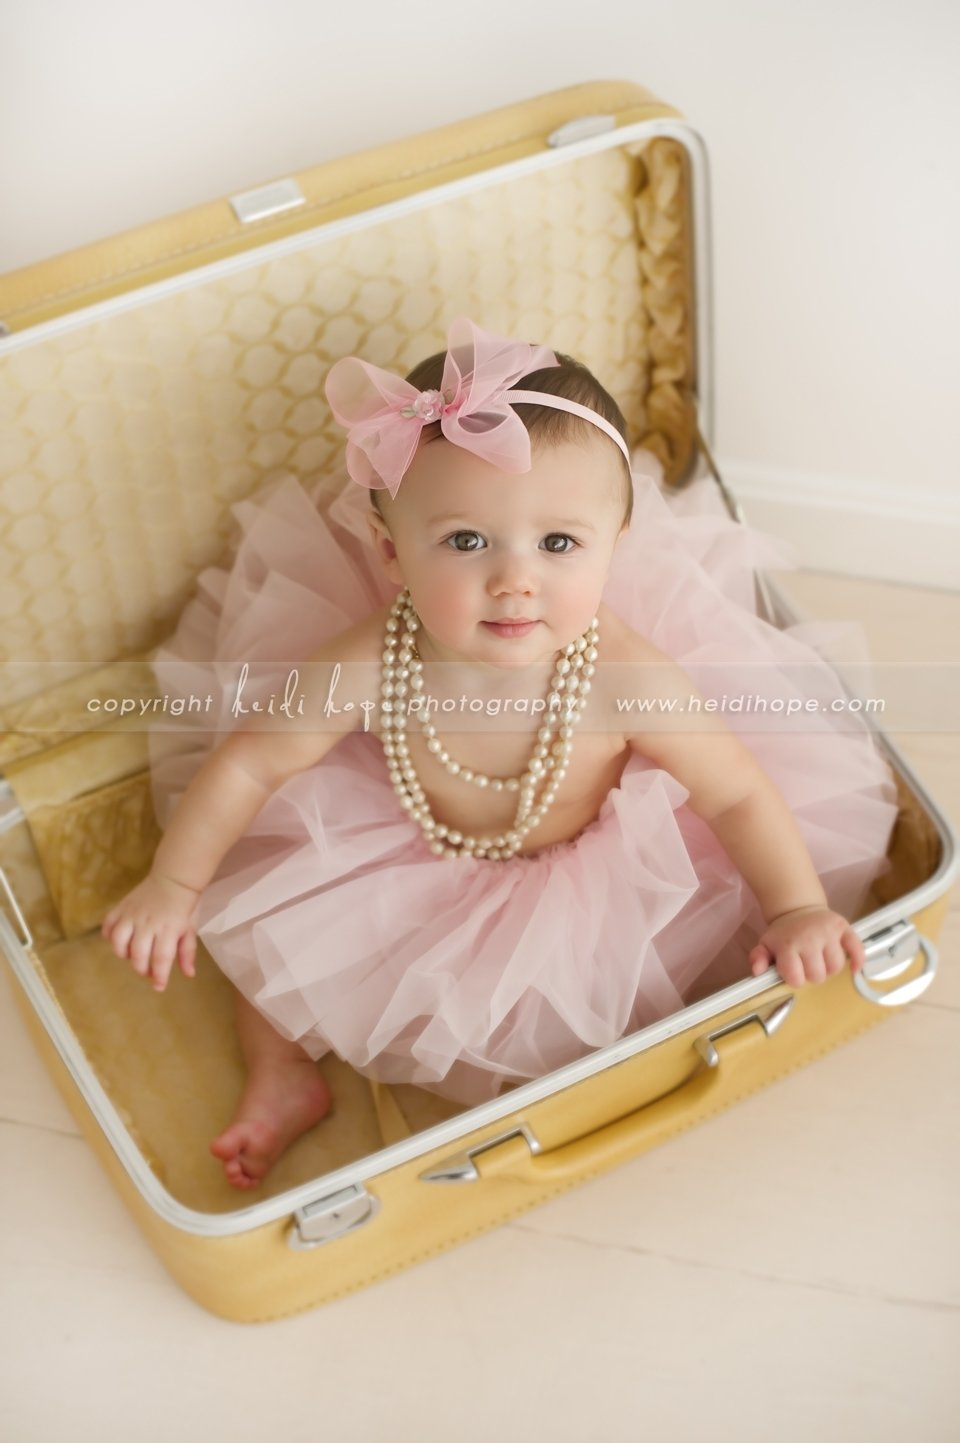 10 Nice 6 Month Baby Girl Picture Ideas awesome 1 month old baby girl photo ideas selection photo and 4 2021